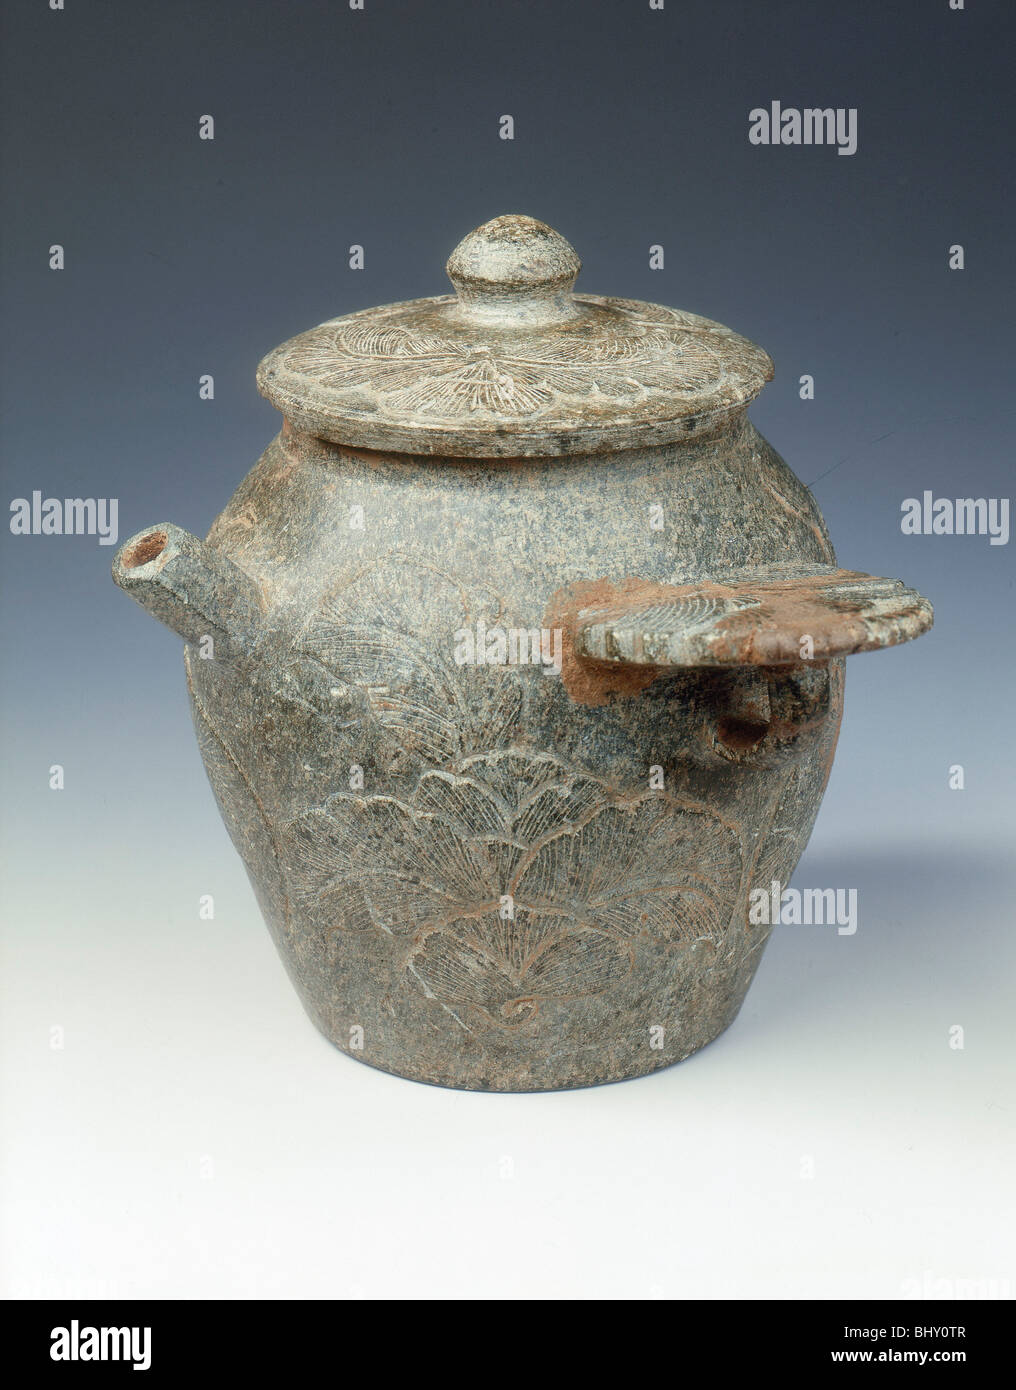 Steatite ewer and cover with cabbage-like foliage in low relief, Late Tang dynasty, 9th century. - Stock Image